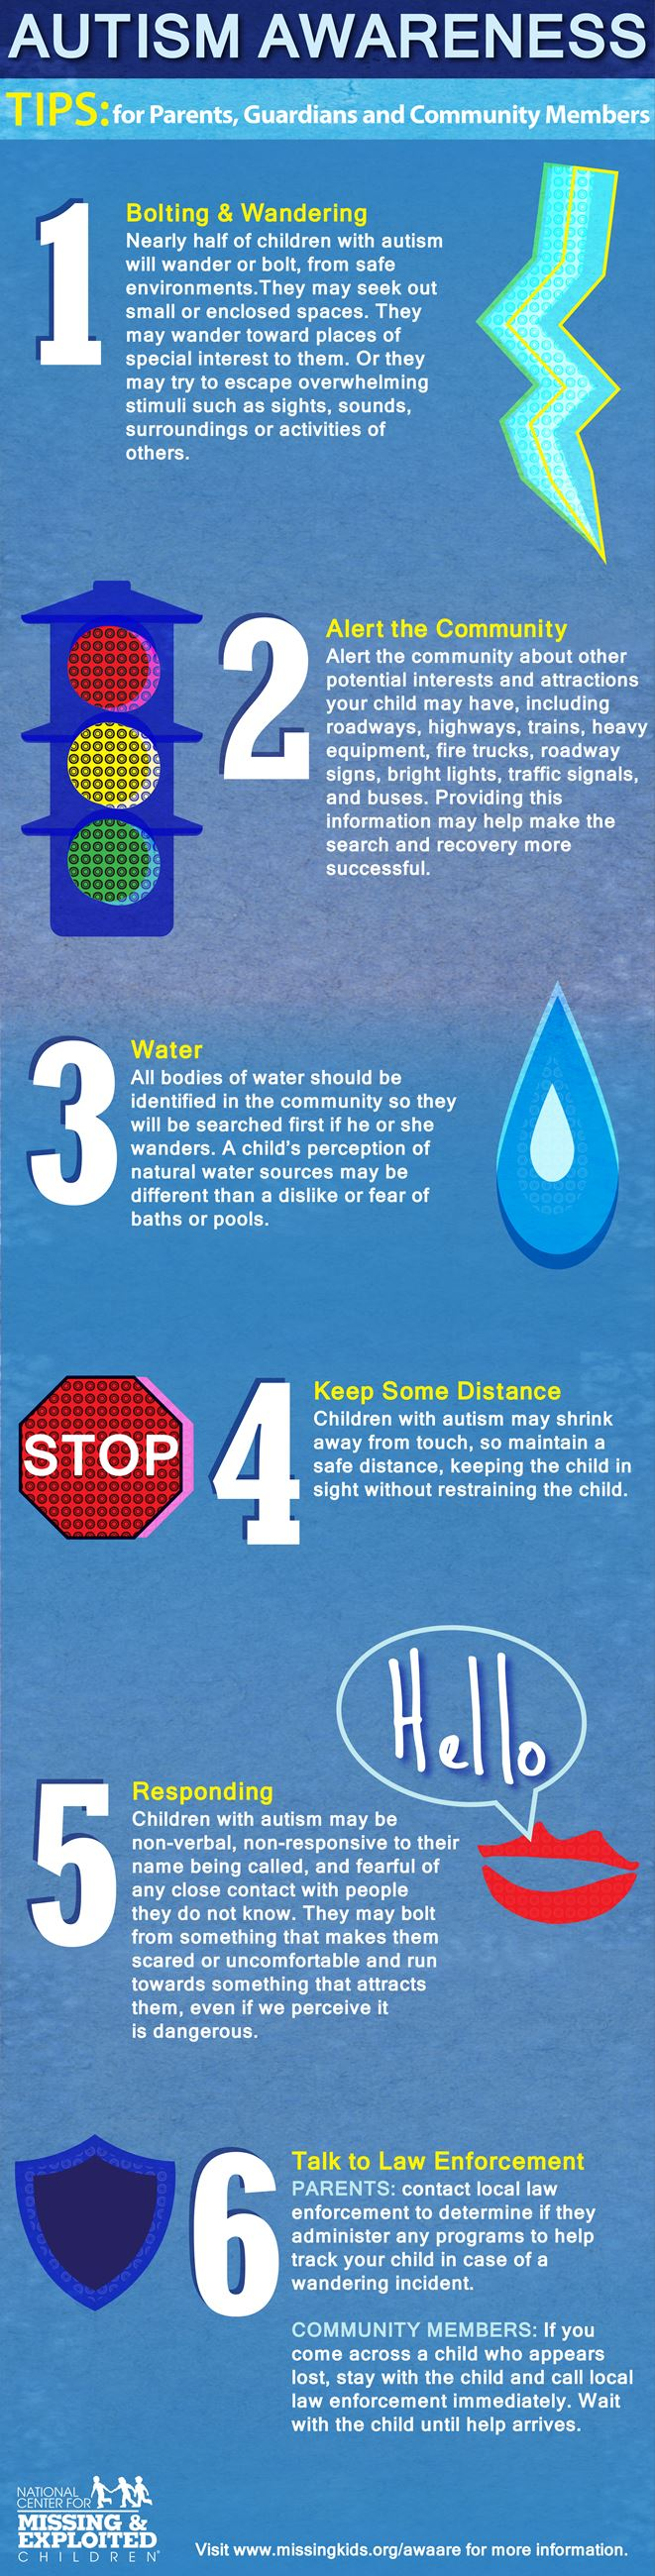 Autism Aware Infographic Alert Keep Distance Talk to Law Enforcement